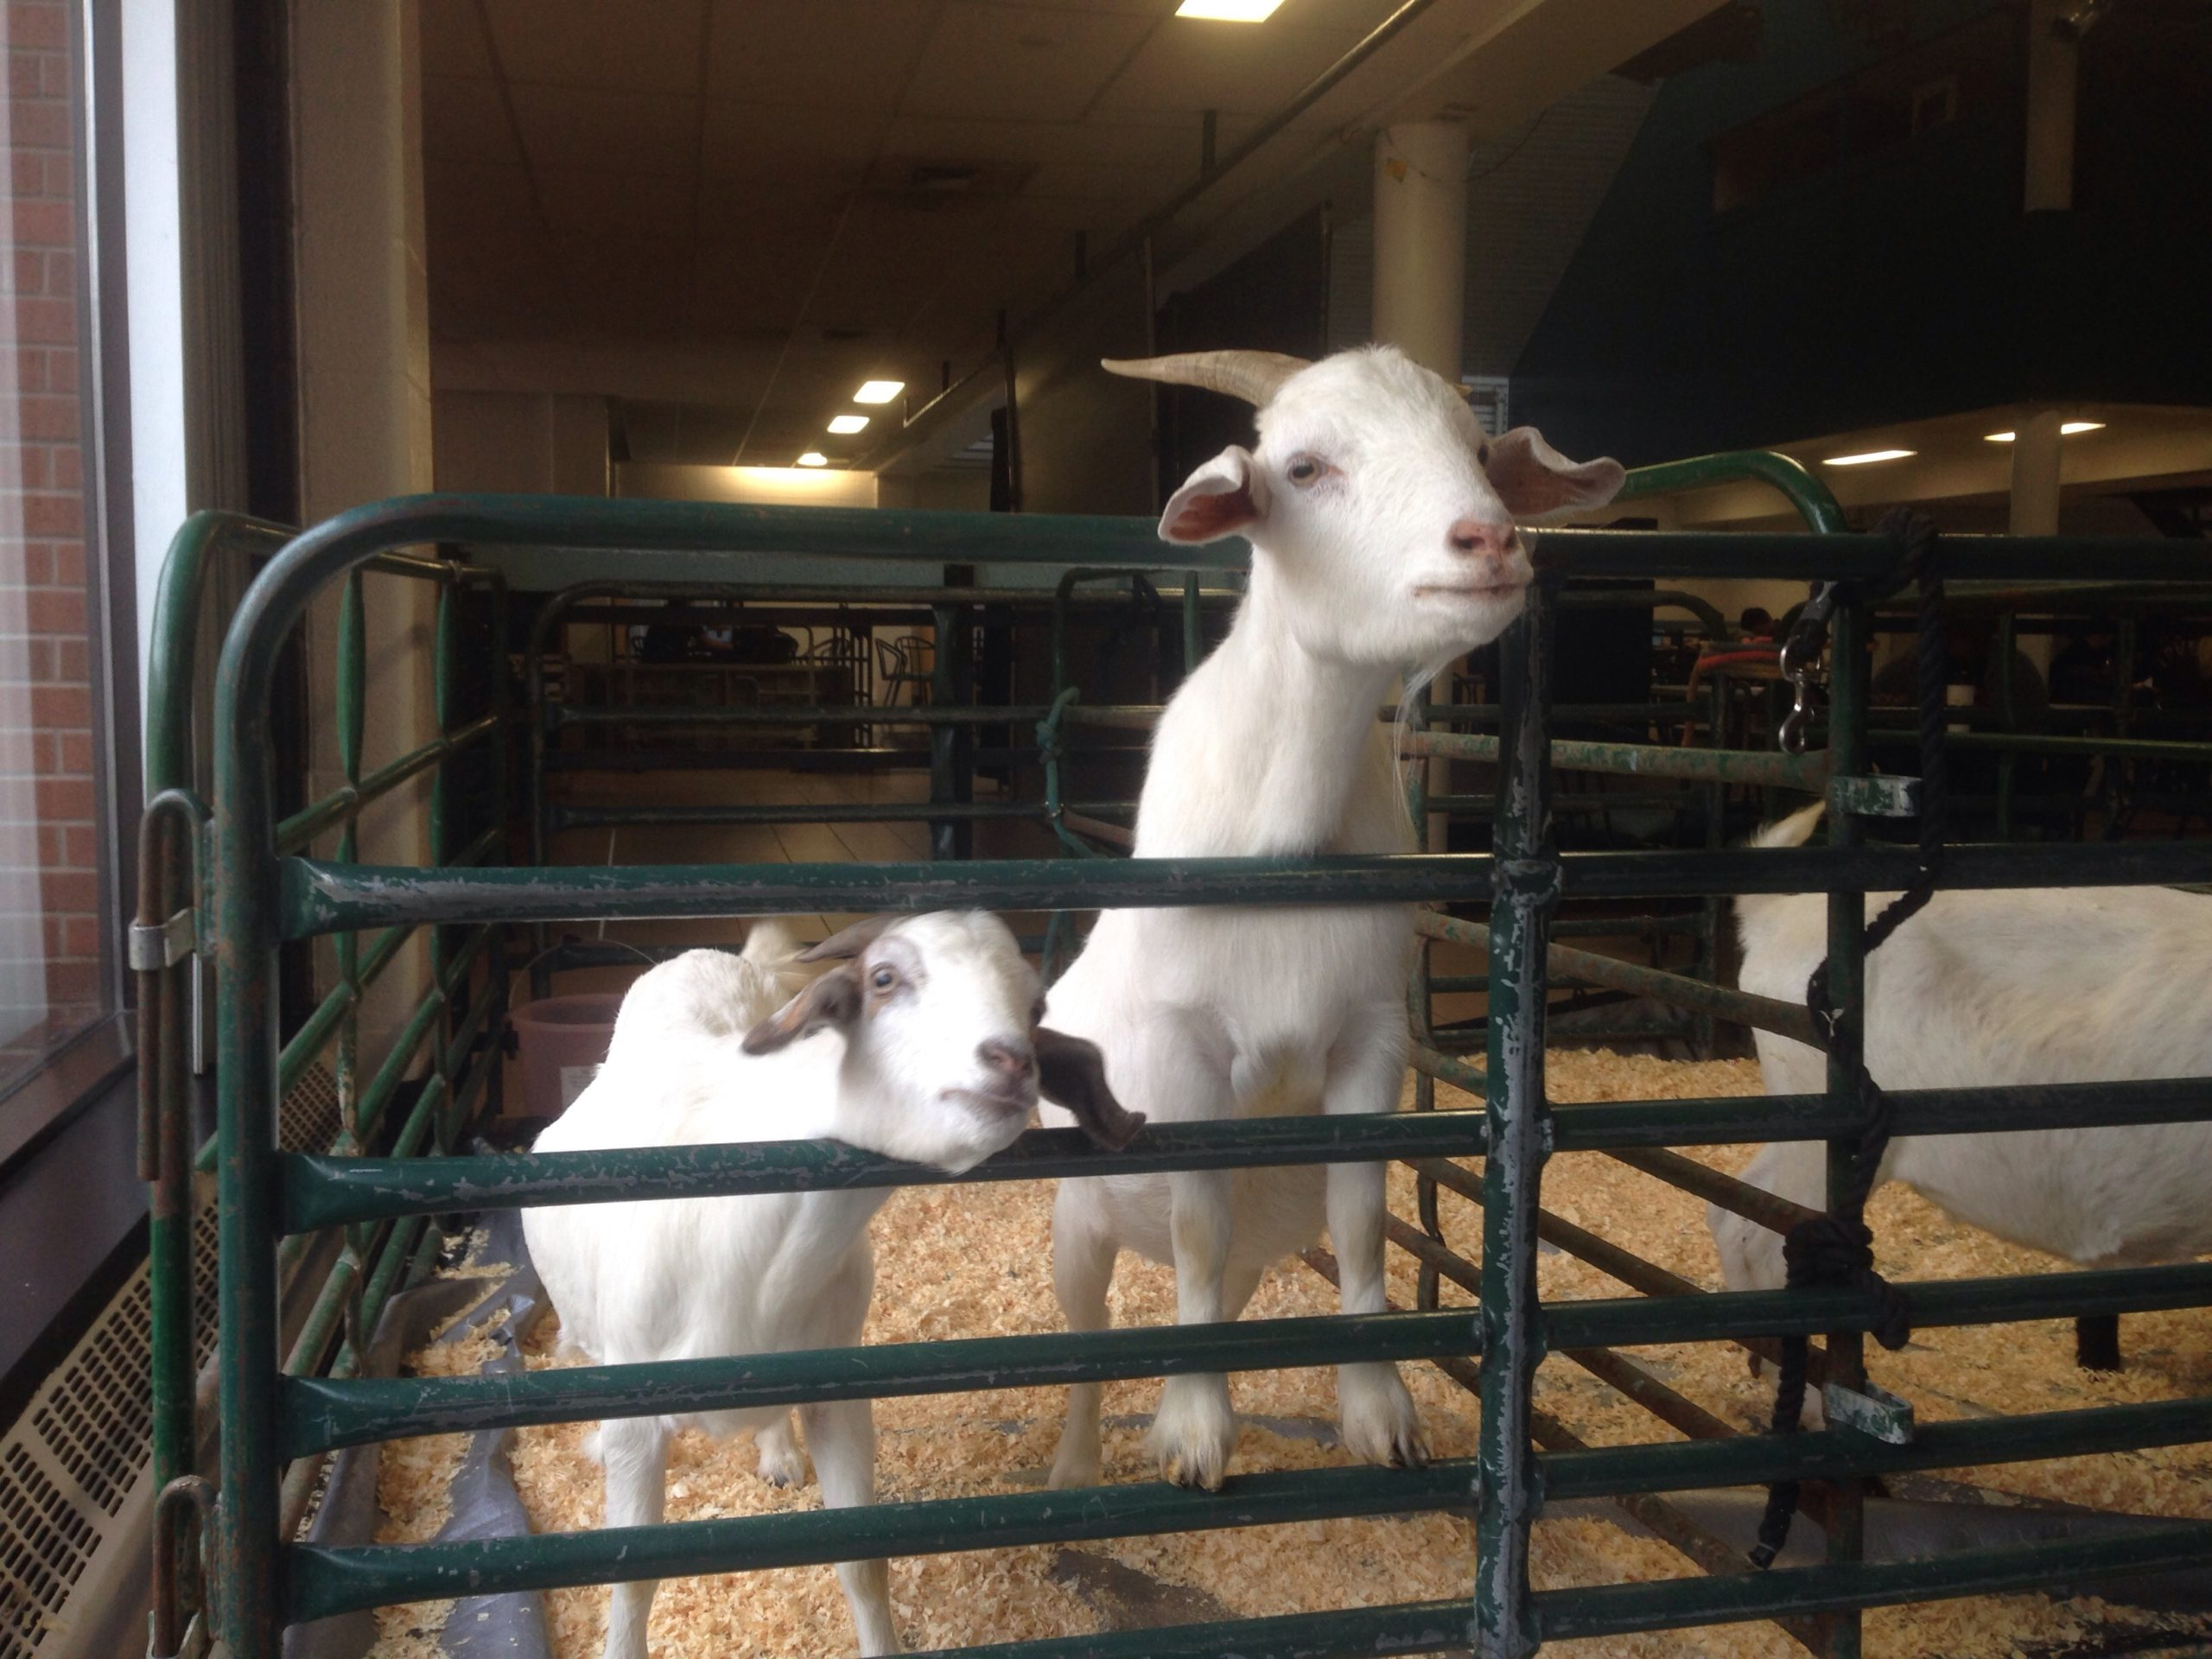 Fanshawe College kicks off mental health week as students join the petting zoo event at Forwell Hall